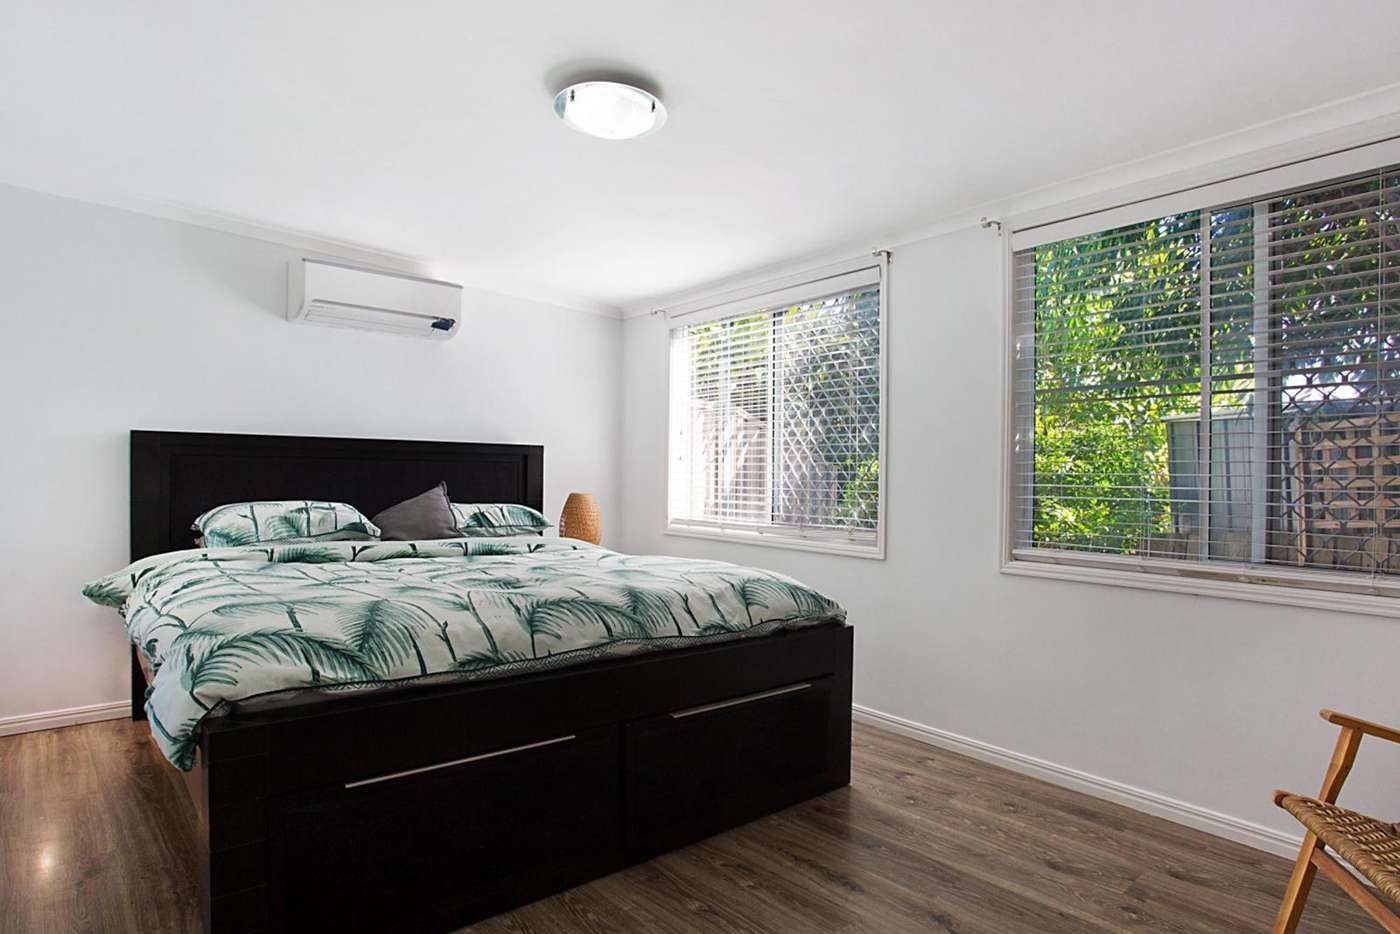 Fifth view of Homely house listing, 4 Millswyn Court, Carrara QLD 4211